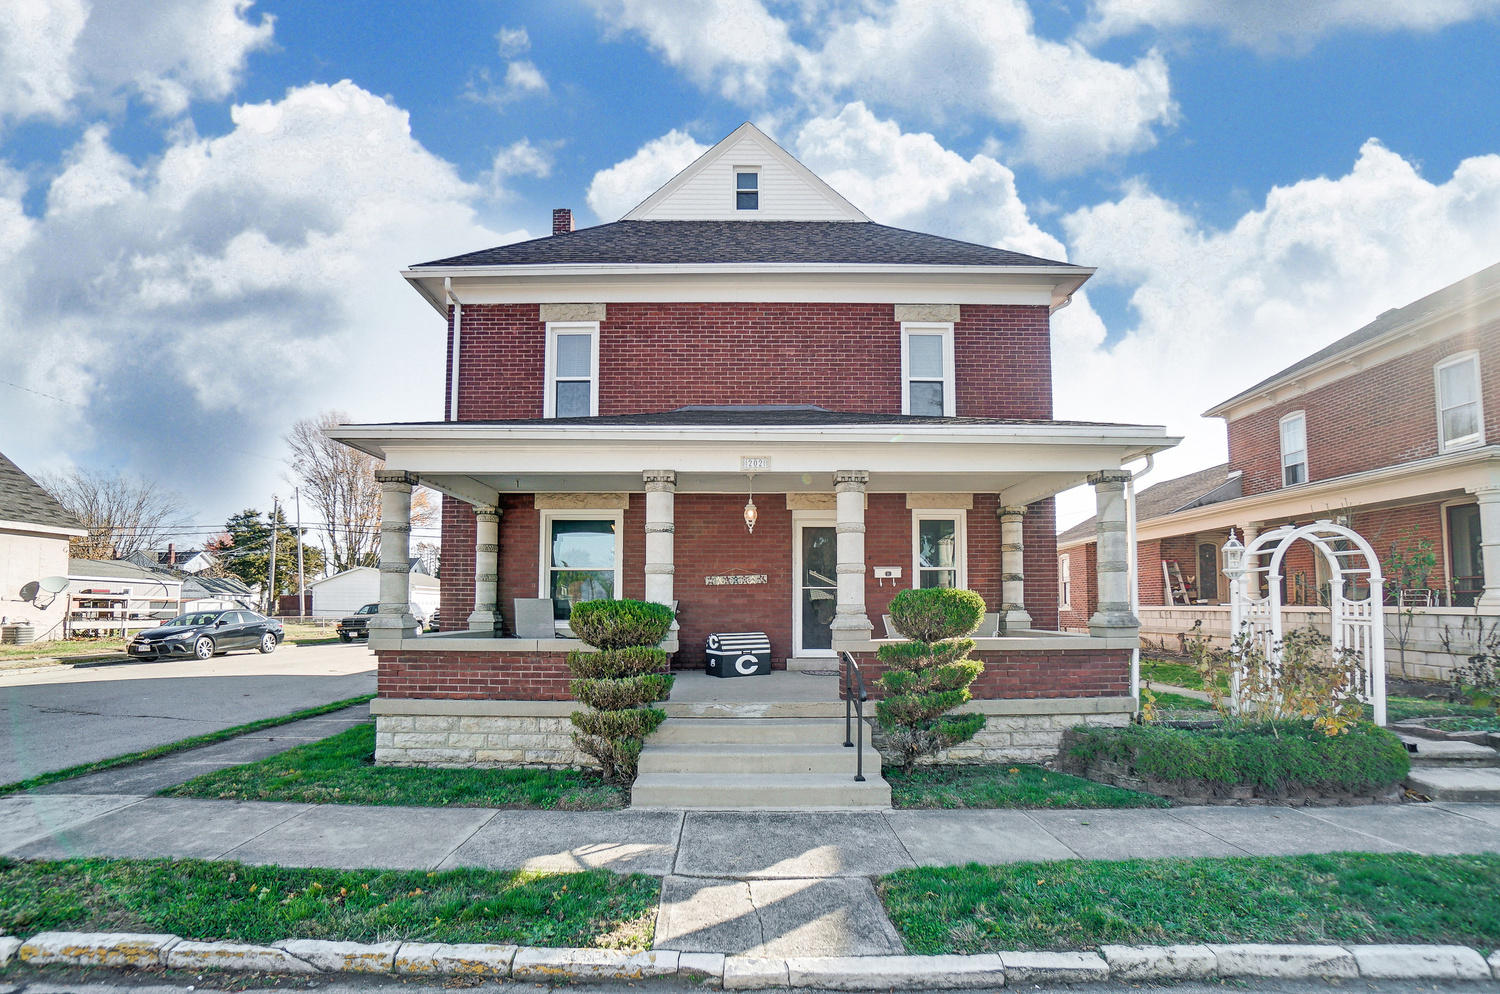 202 S Pearl Street Property Photo - Covington, OH real estate listing